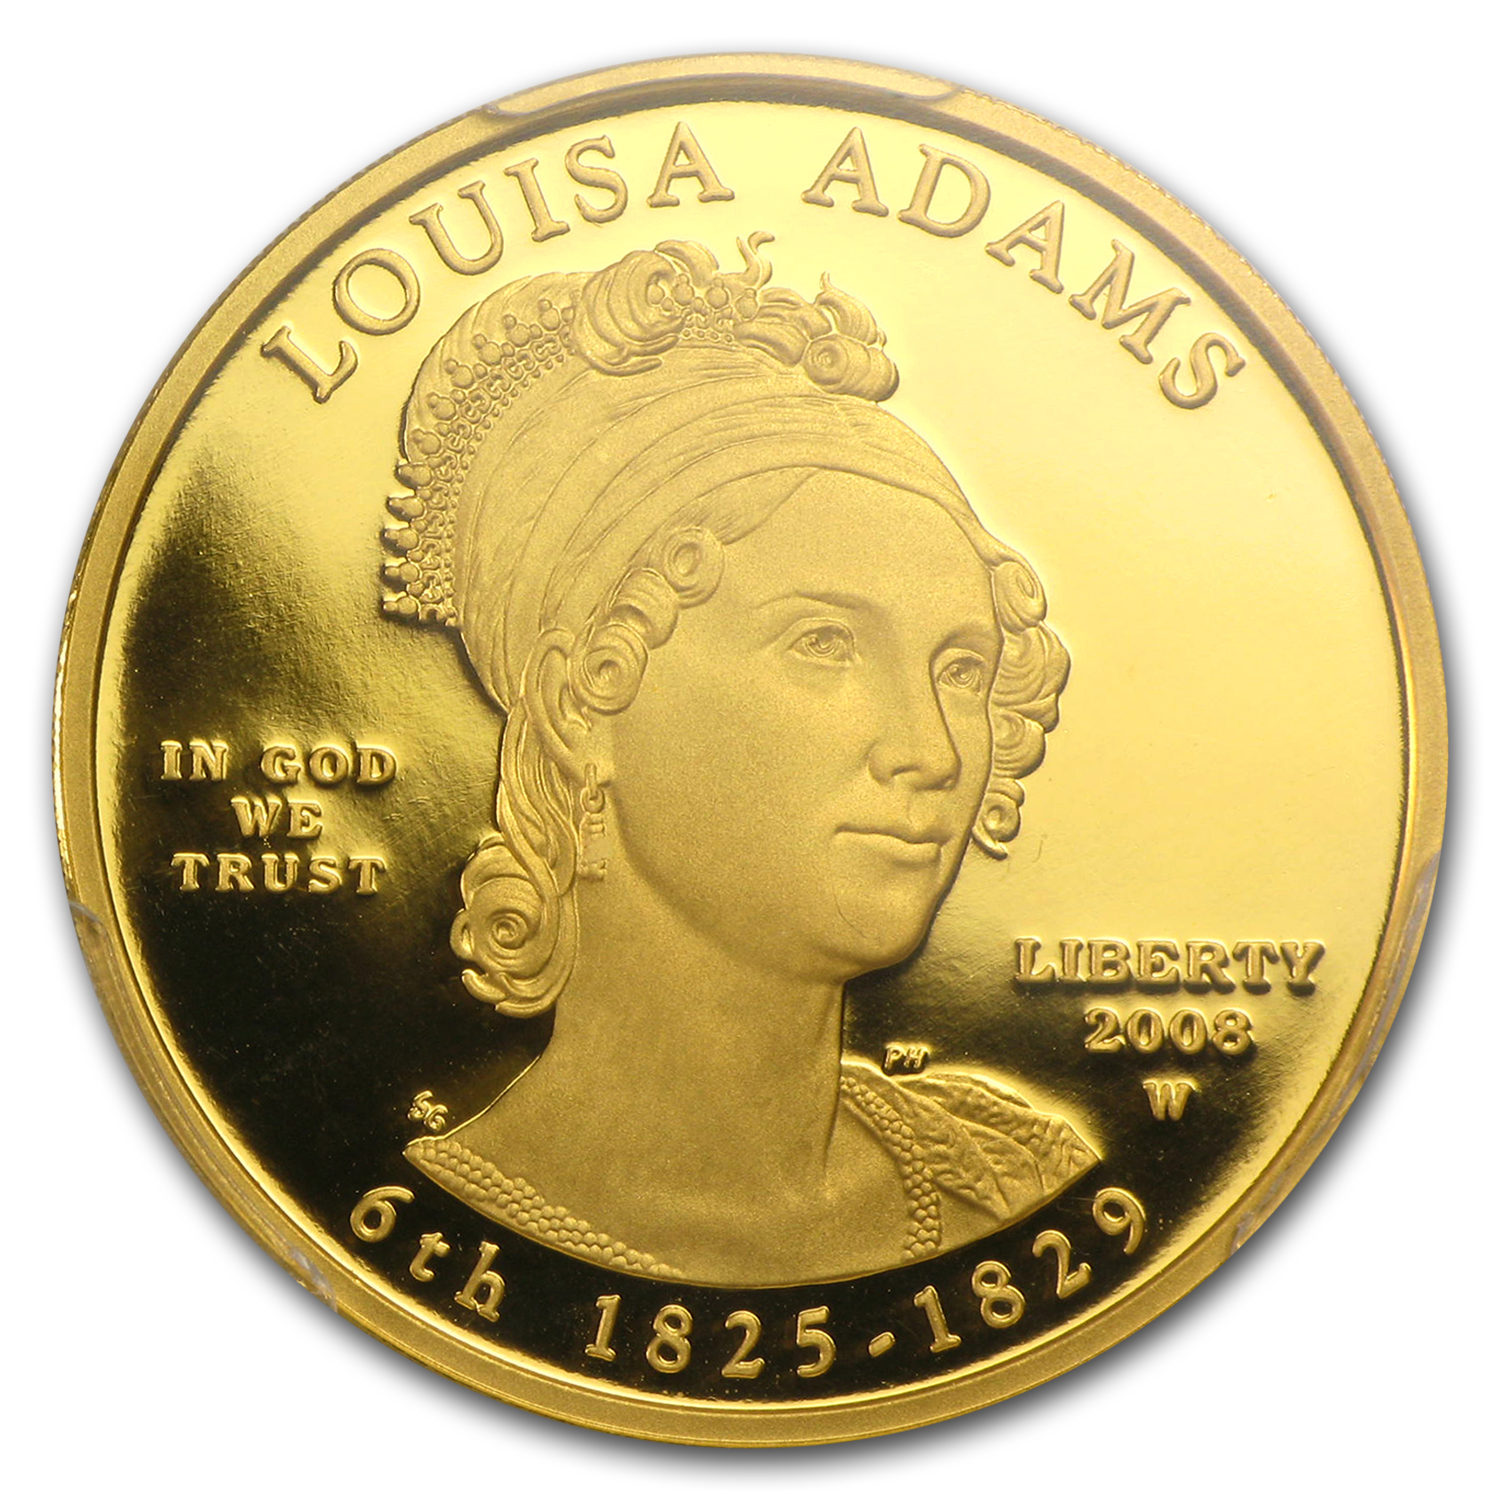 2008-W 1/2 oz Proof Gold Louisa Adams PR-69 PCGS (FS)